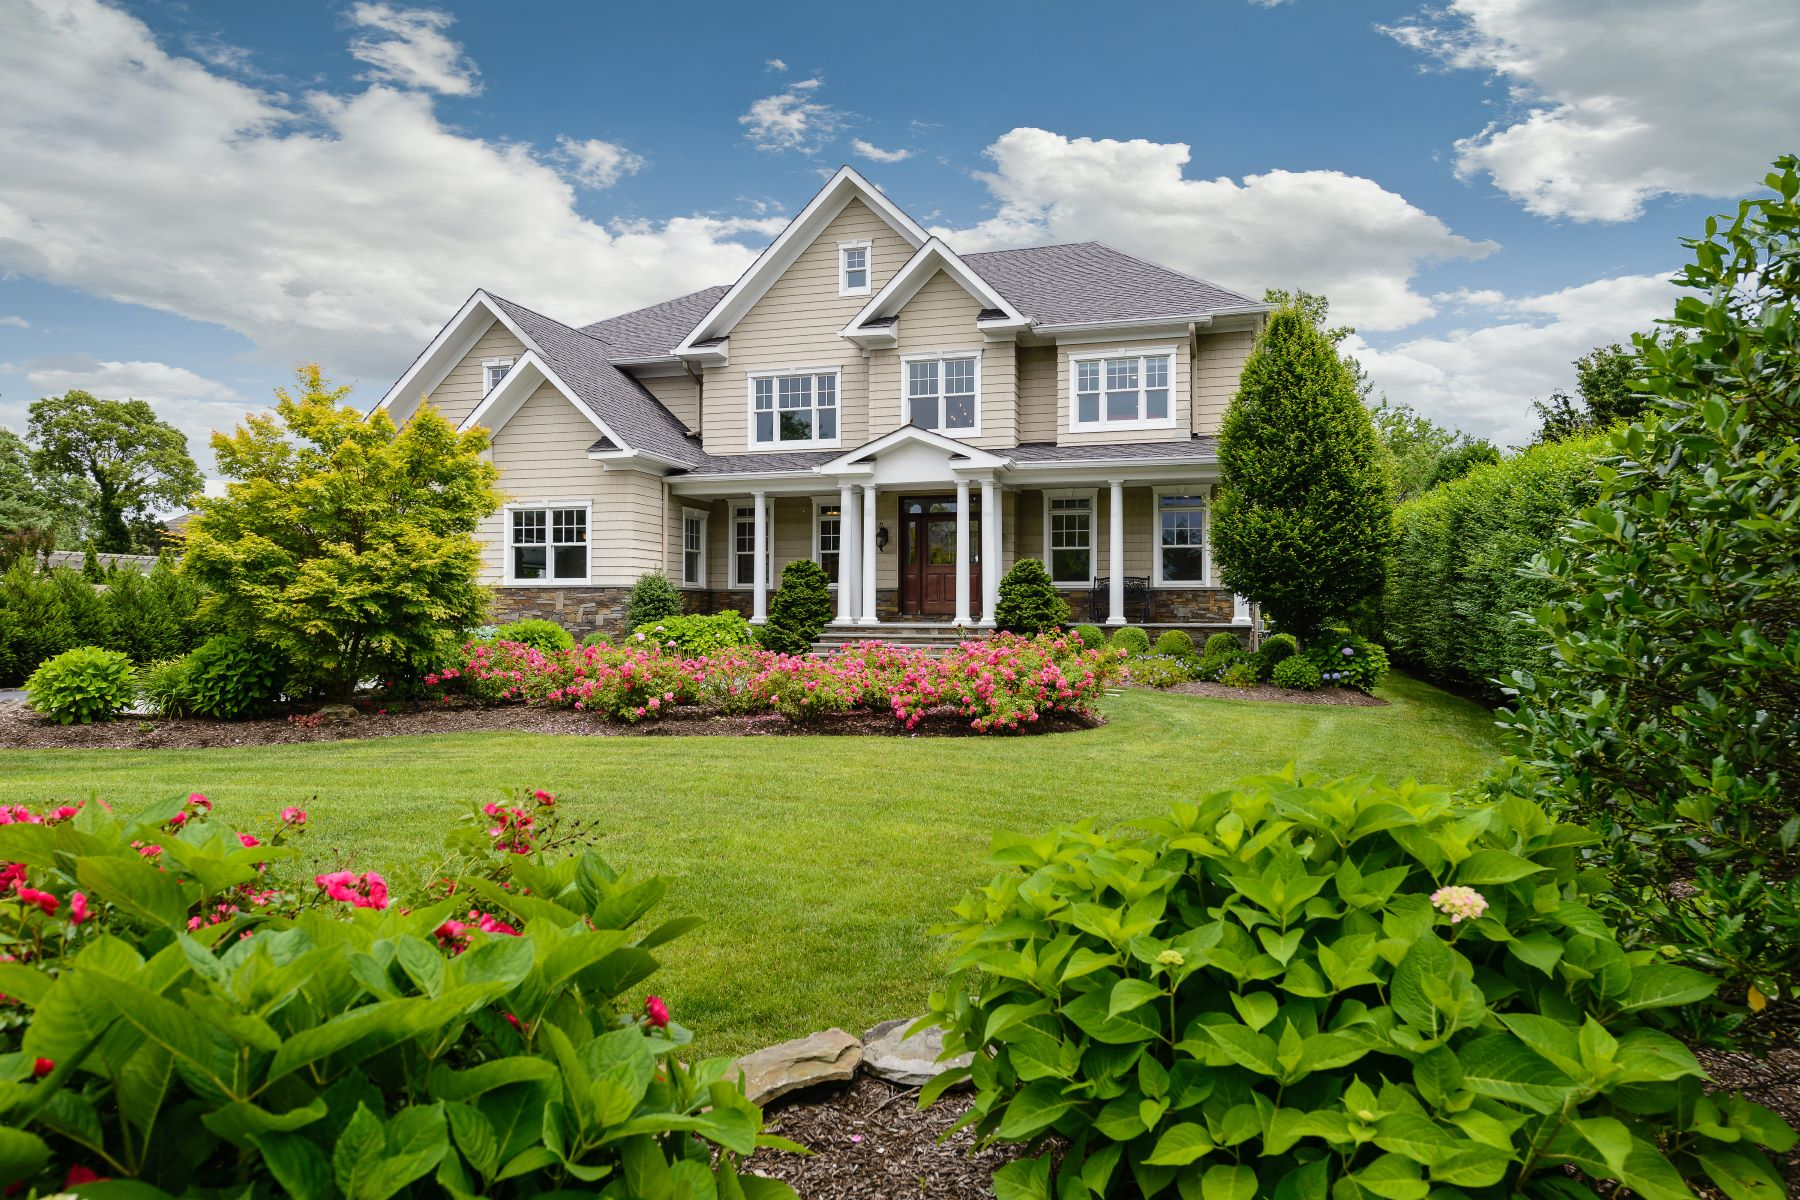 Single Family Homes for Sale at West Islip 147 Eaton Ln West Islip, New York 11795 United States